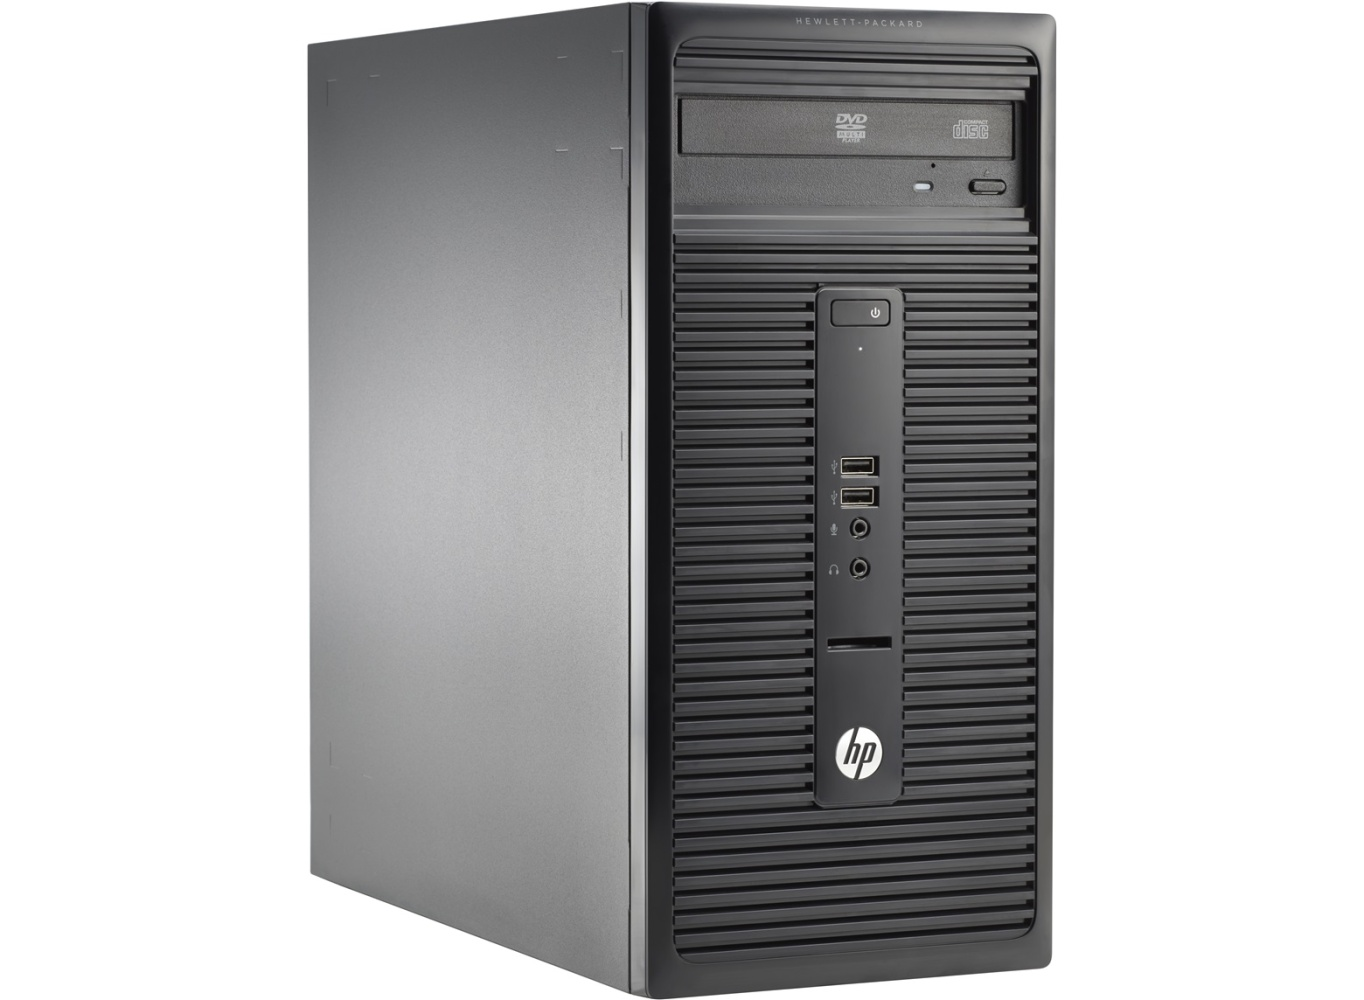 HP 280G1 MT / Intel Pentium G3250 3,2GHz / 4GB / 500GB / Intel HD / DVDRW / Win 10 Pro downgr W7Pro / 1-1-1